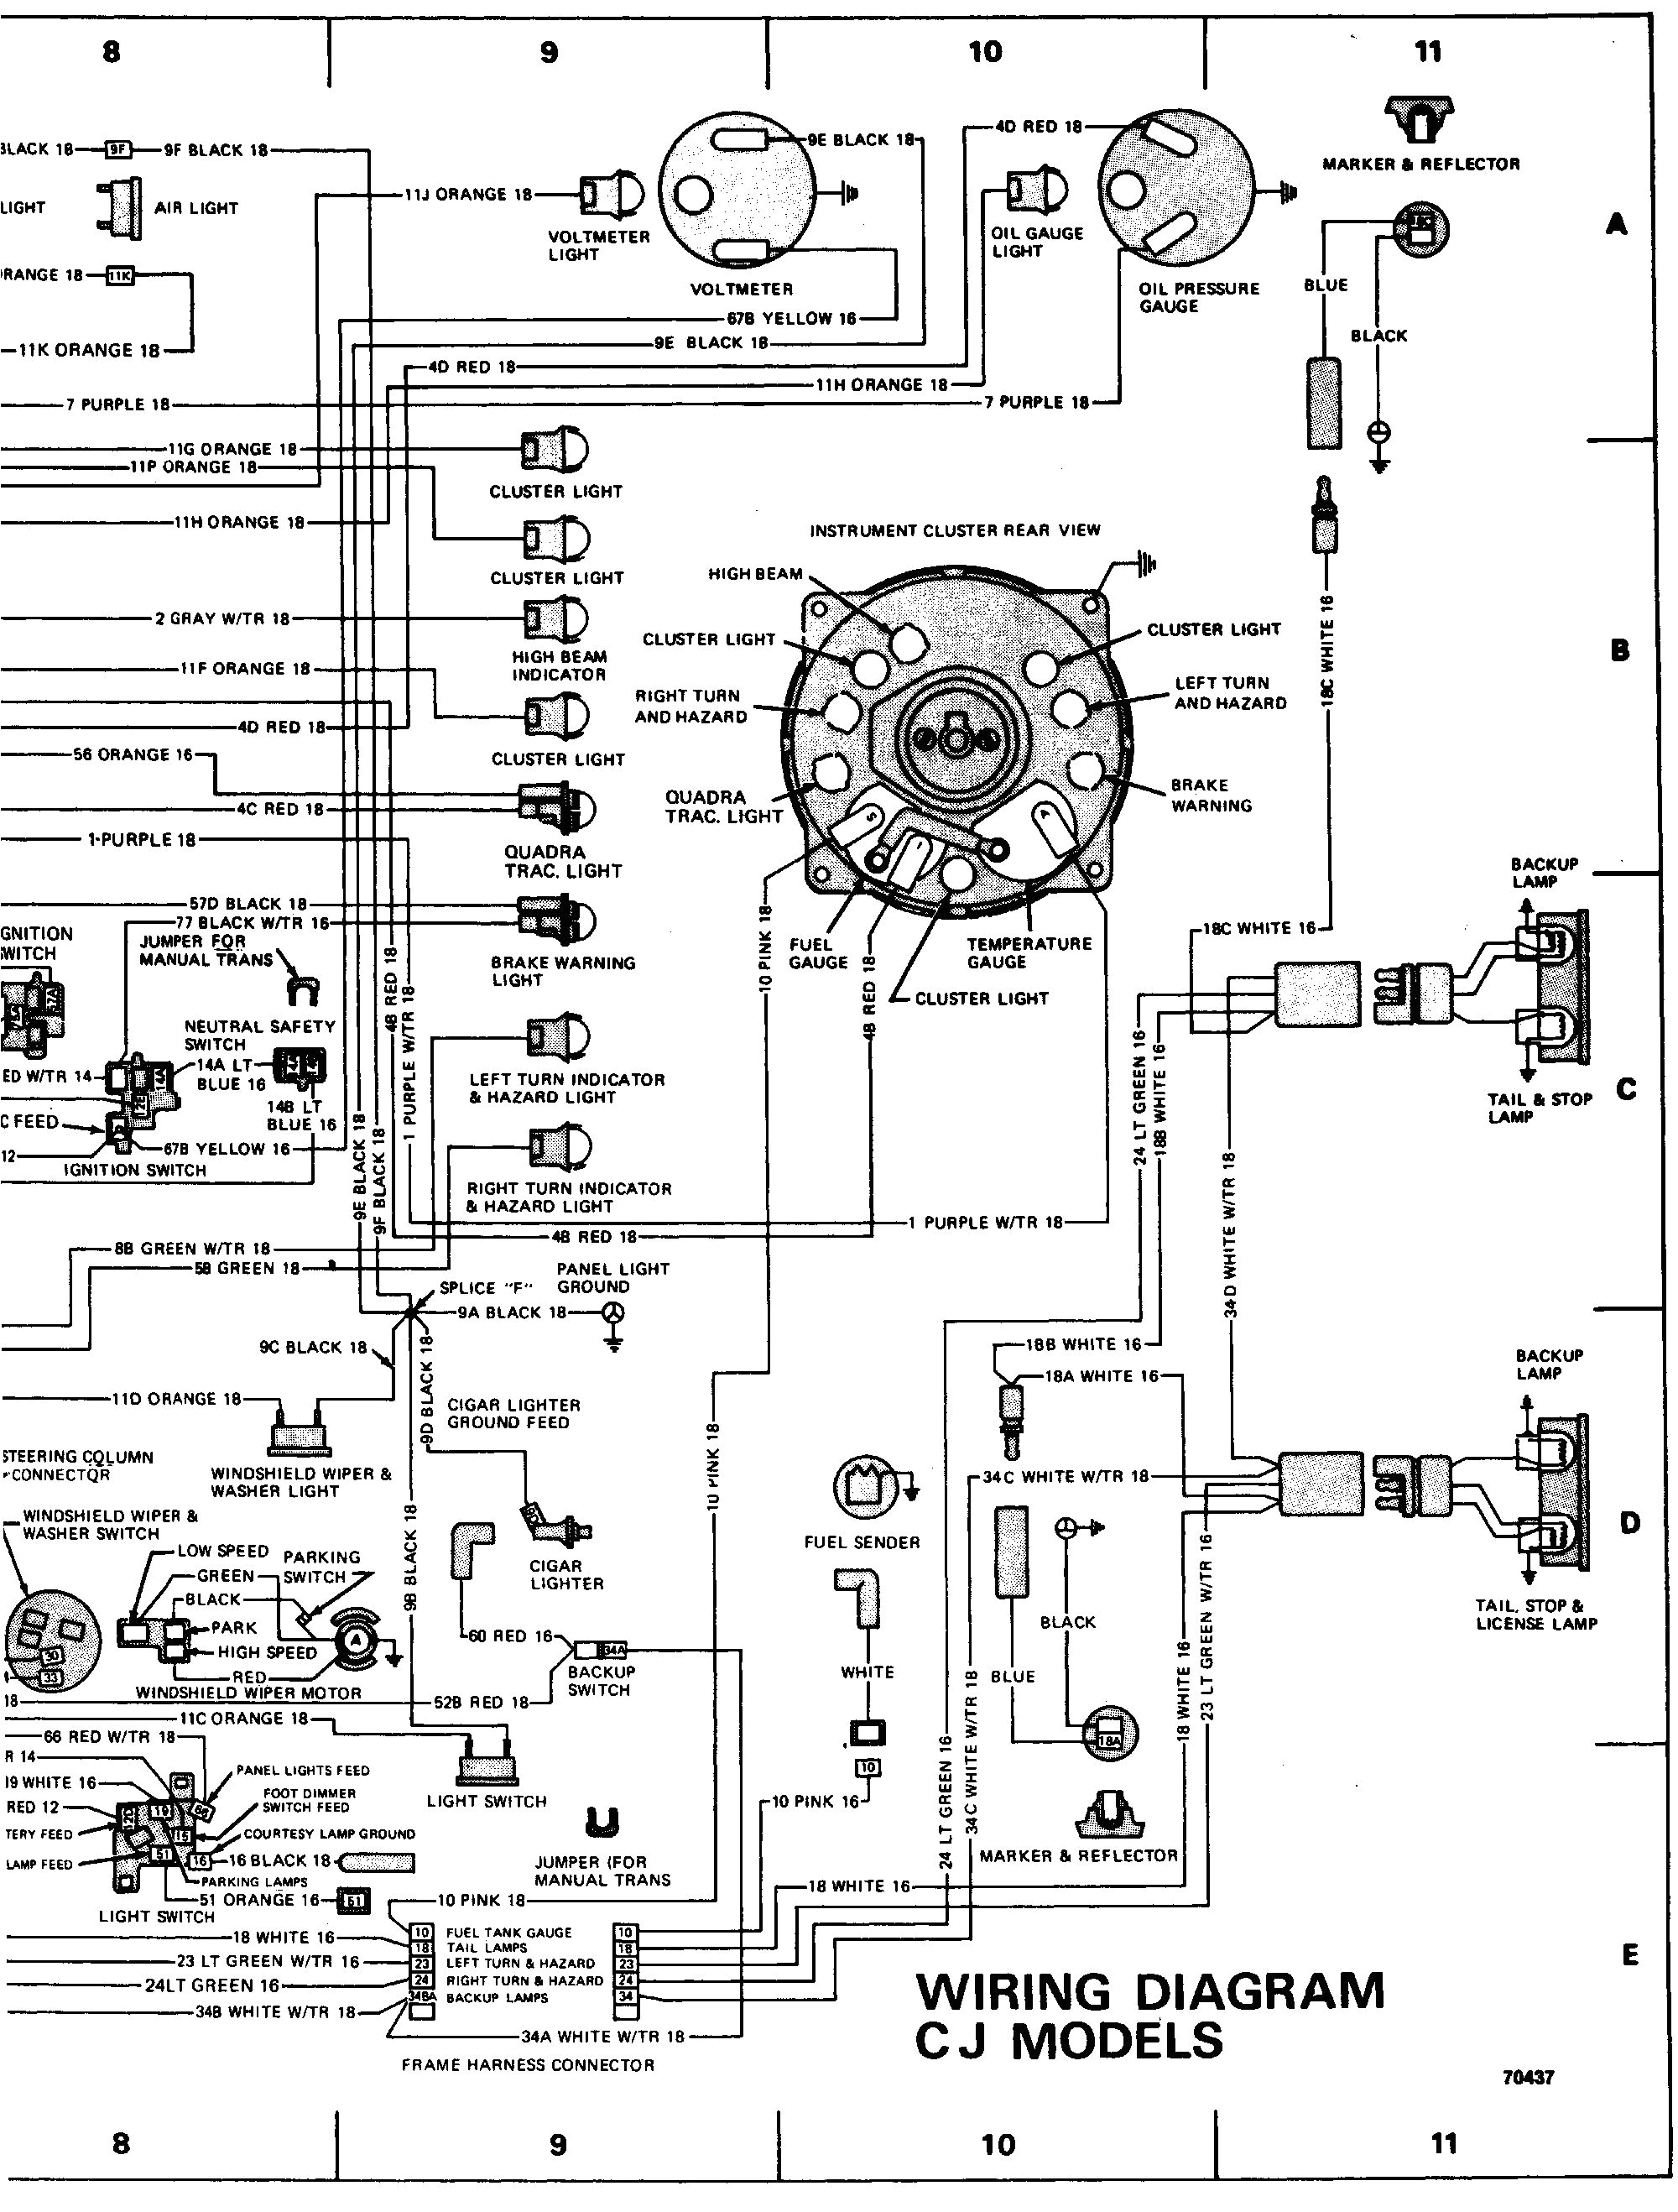 1984 jeep wiring diagram wiring diagram view 1984 jeep cj7 wiring diagram wiring diagram mega 1984